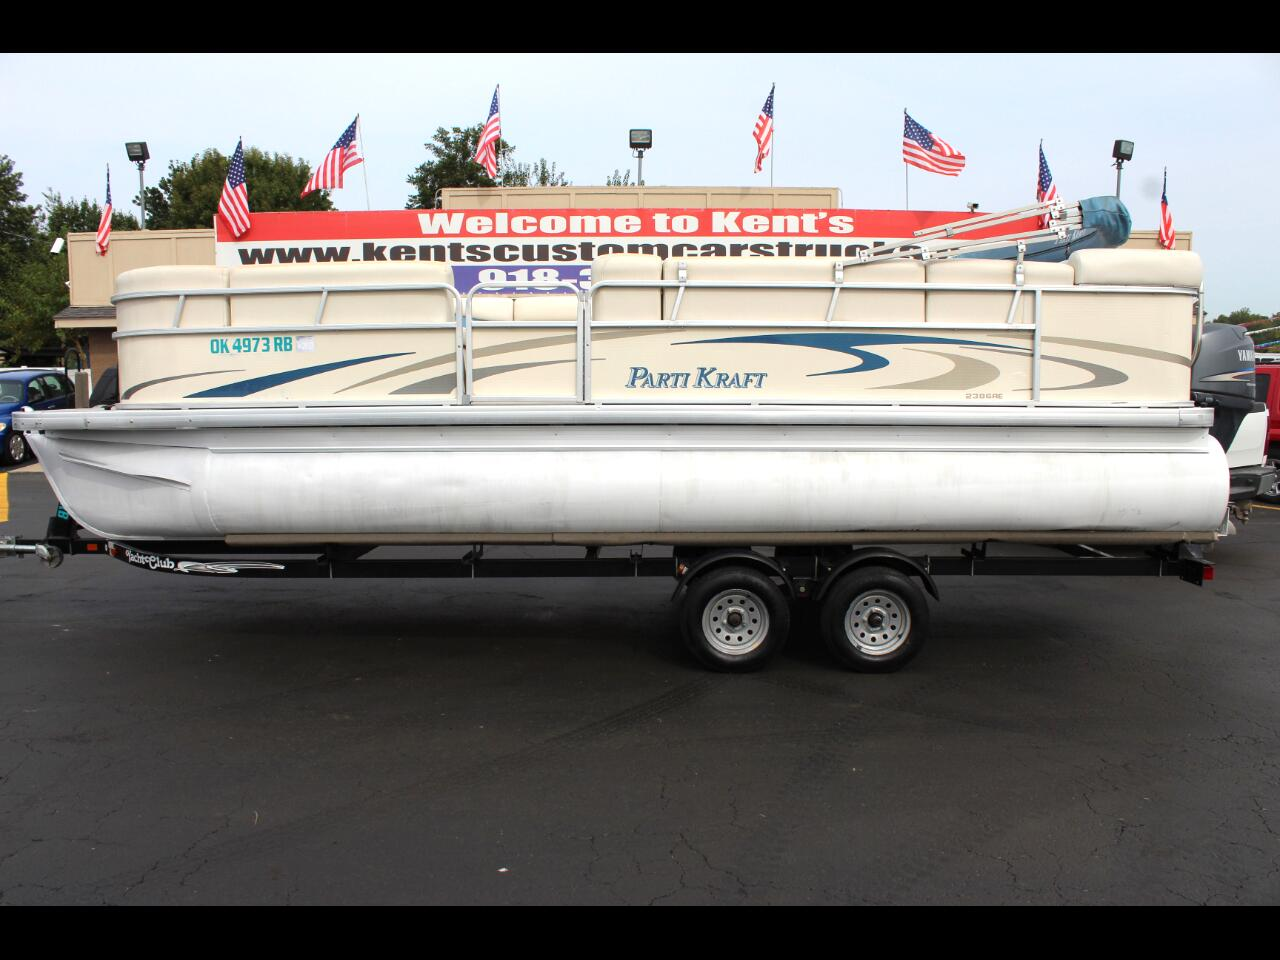 2007 Godfrey PartiKraft 2386-23 RE 3 Gate Pontoon